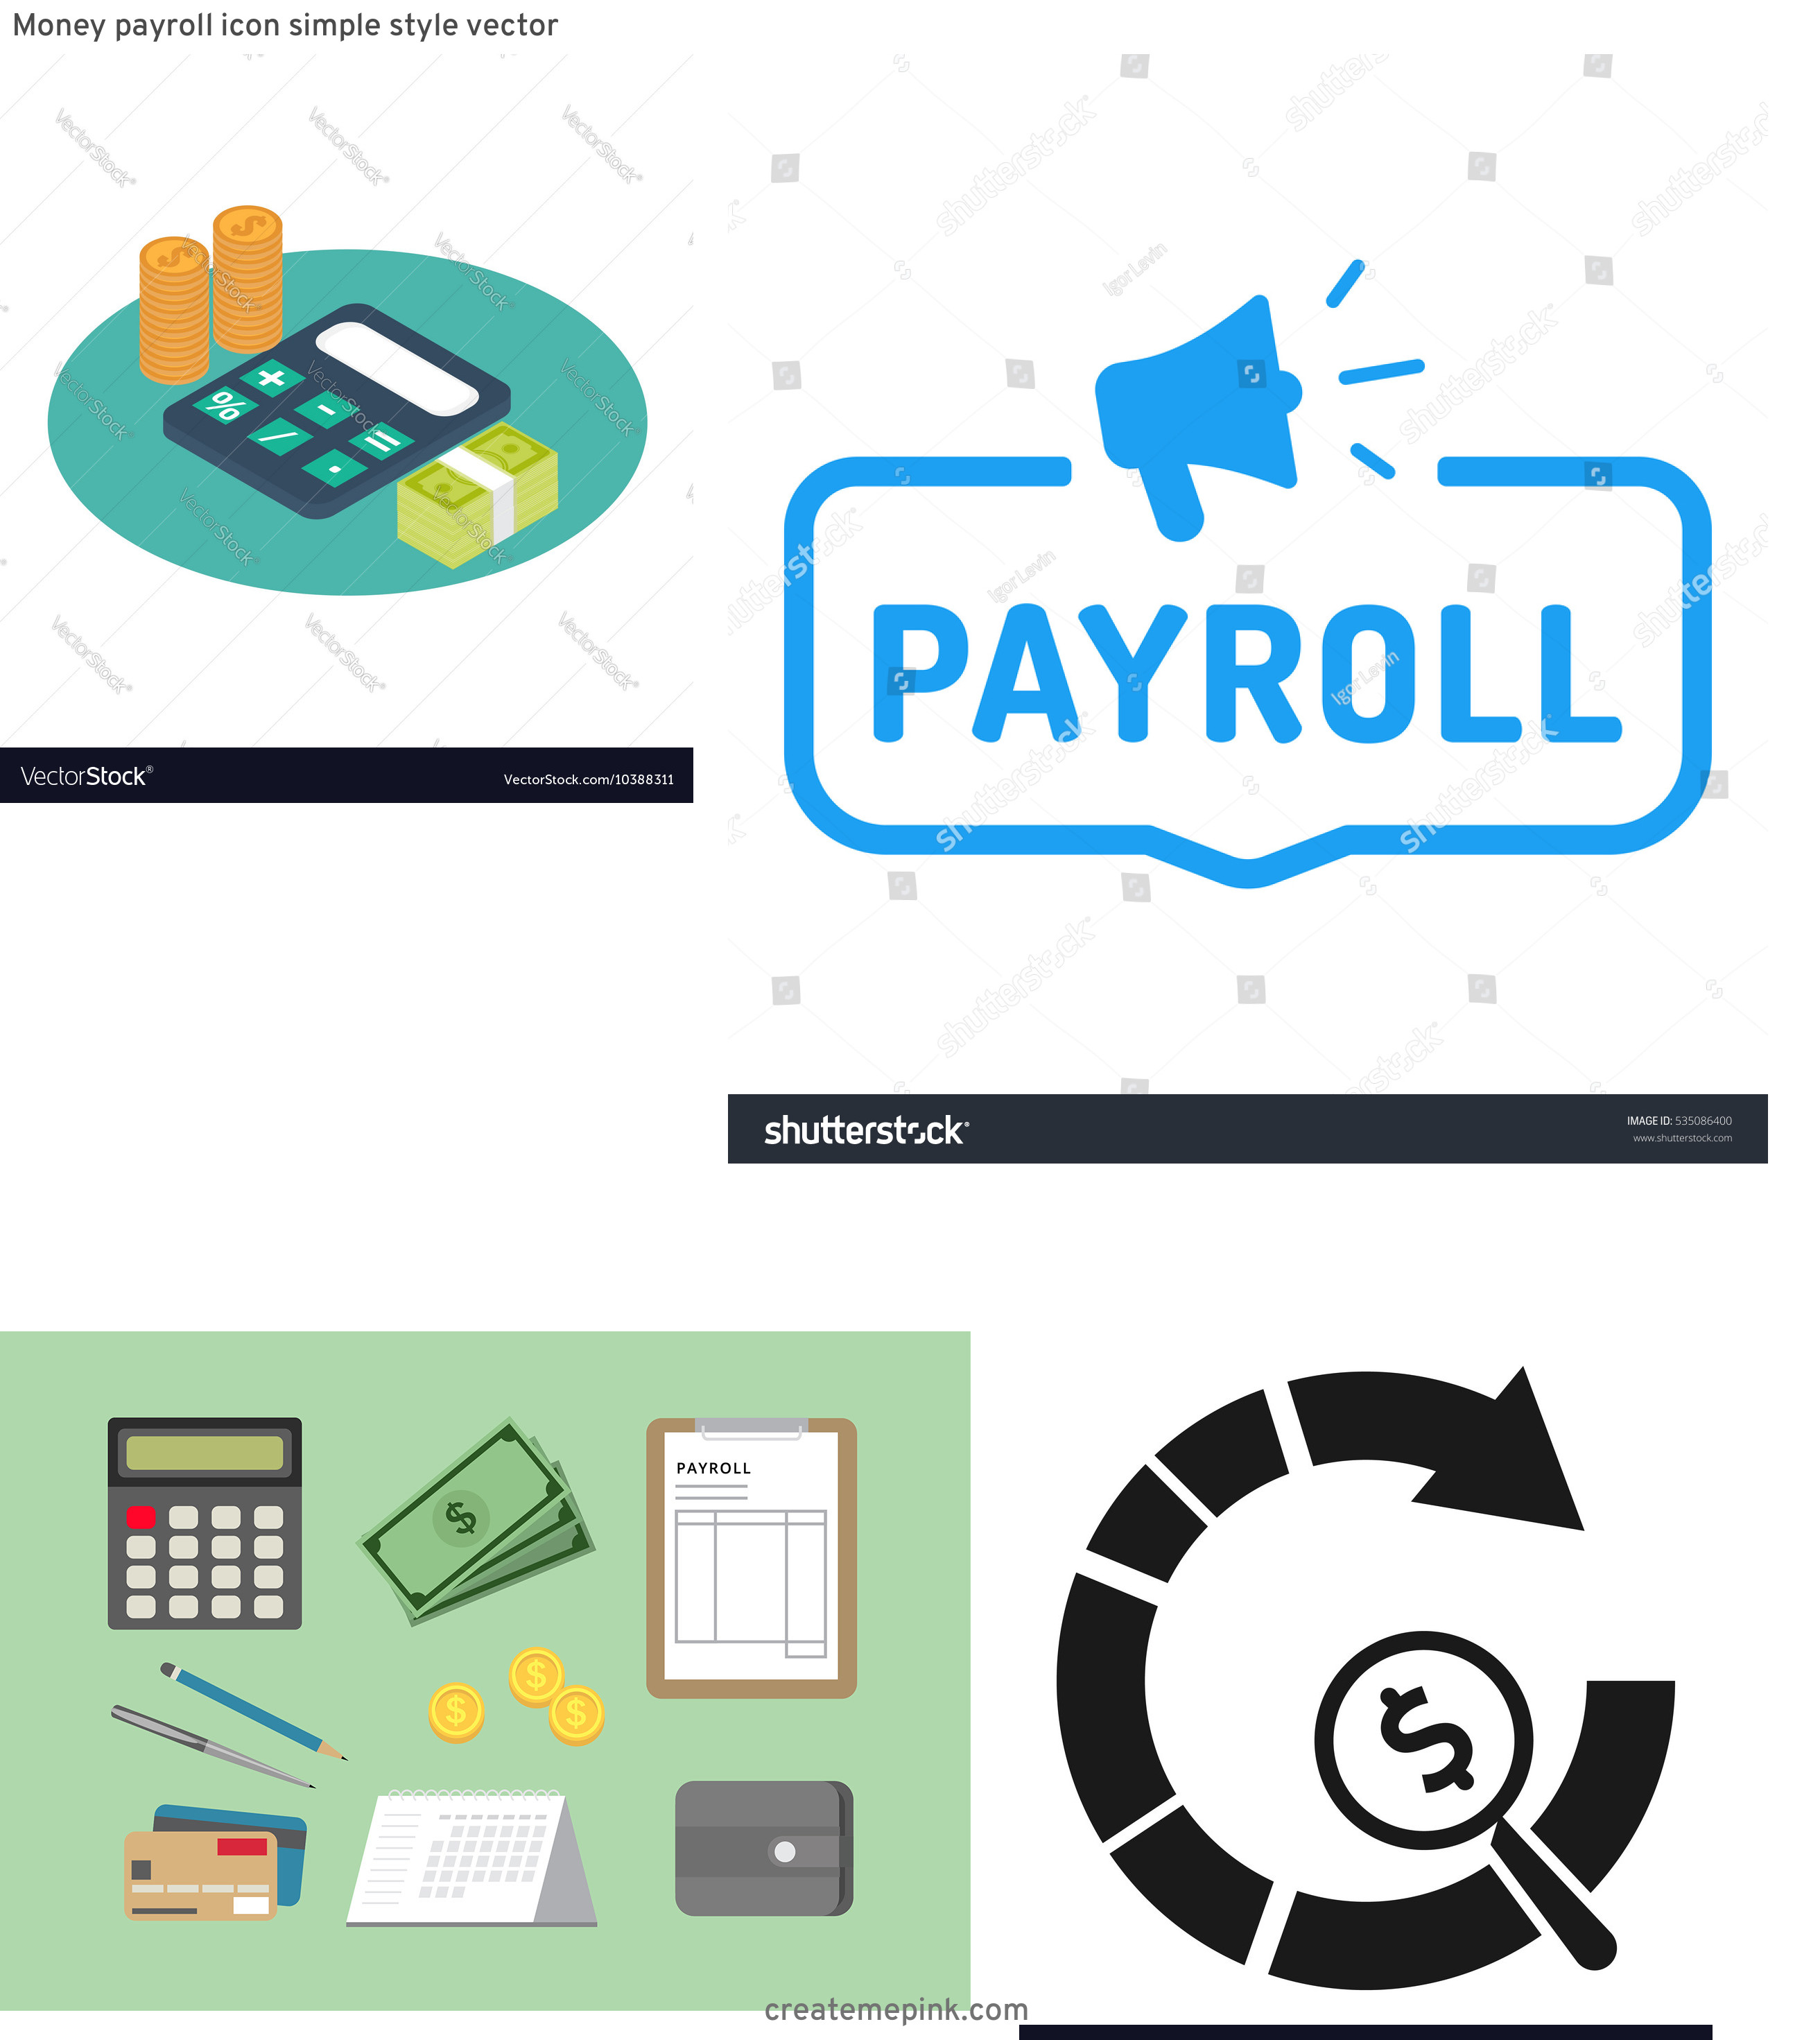 Payroll Icon Vector: Money Payroll Icon Simple Style Vector